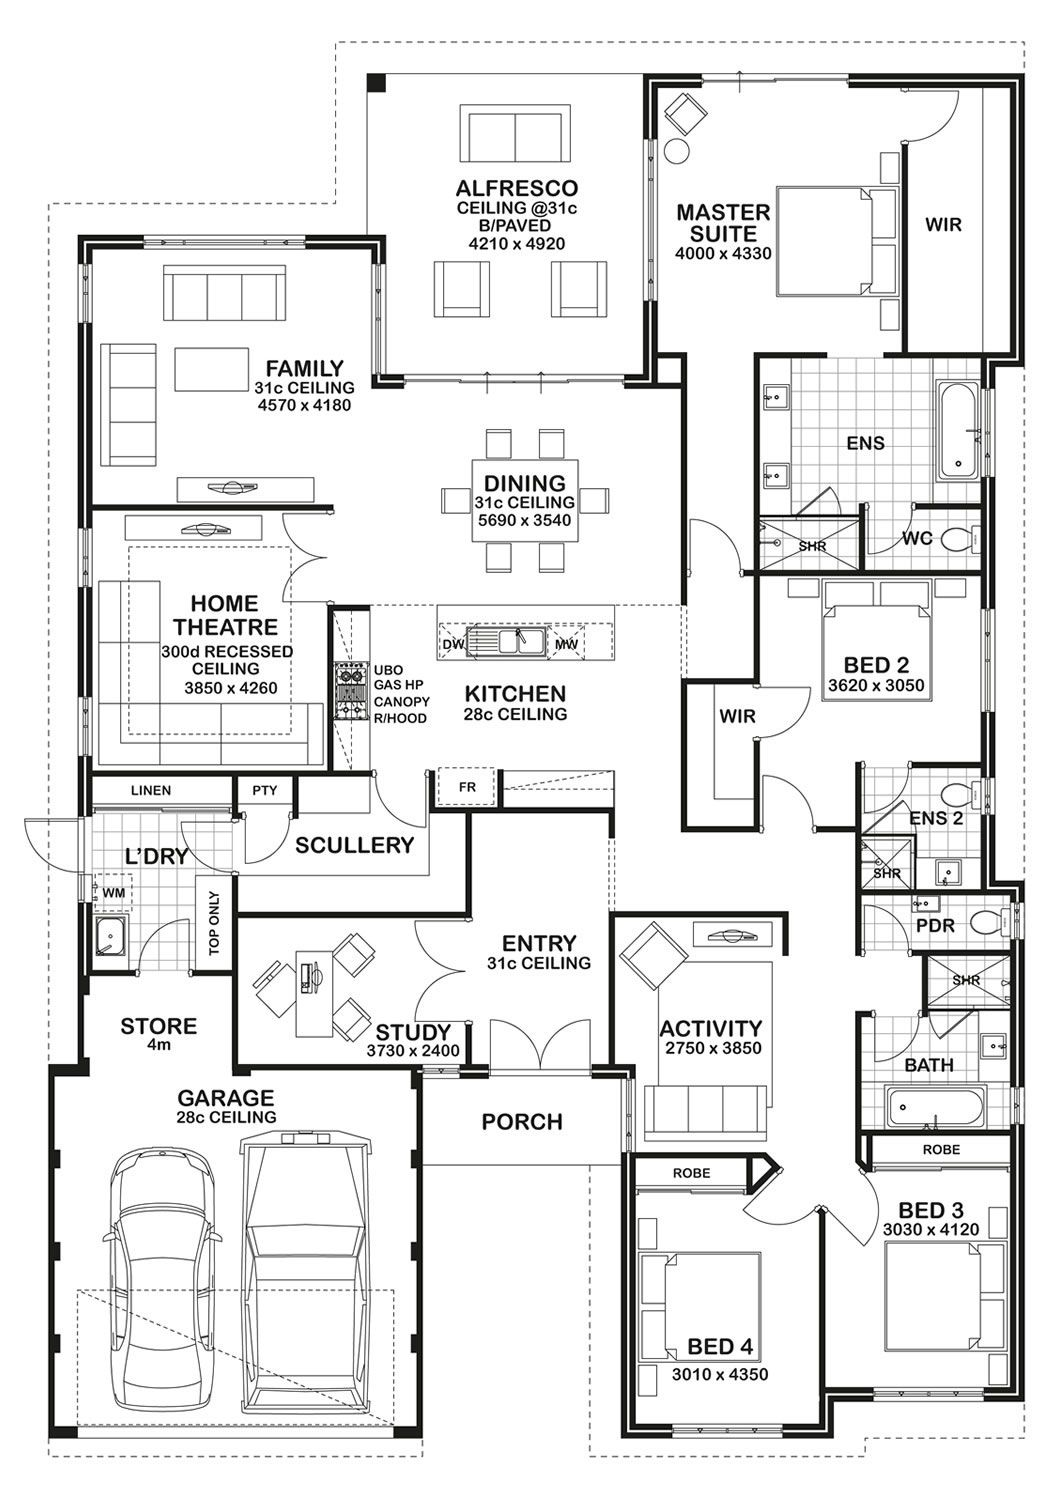 4 Bedroom Floor Plan Love The Kids Lounge That Helps Designate A Whole Wing For All Their Play Thi 4 Bedroom House Plans House Blueprints Bedroom House Plans